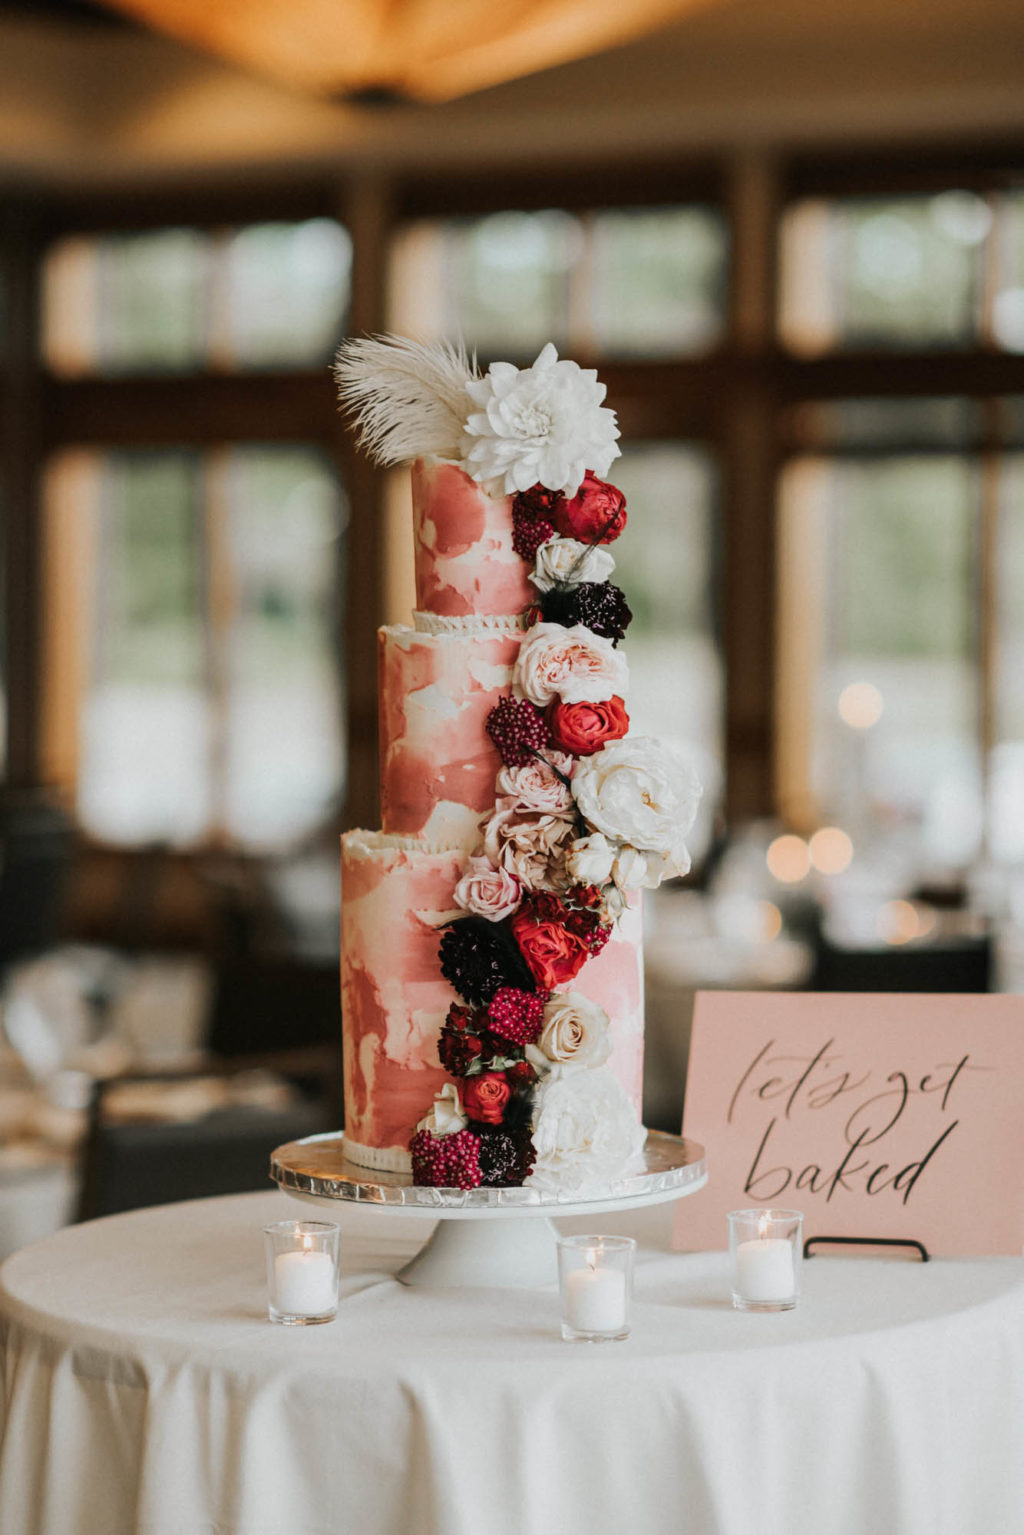 pink and white cake at the reception